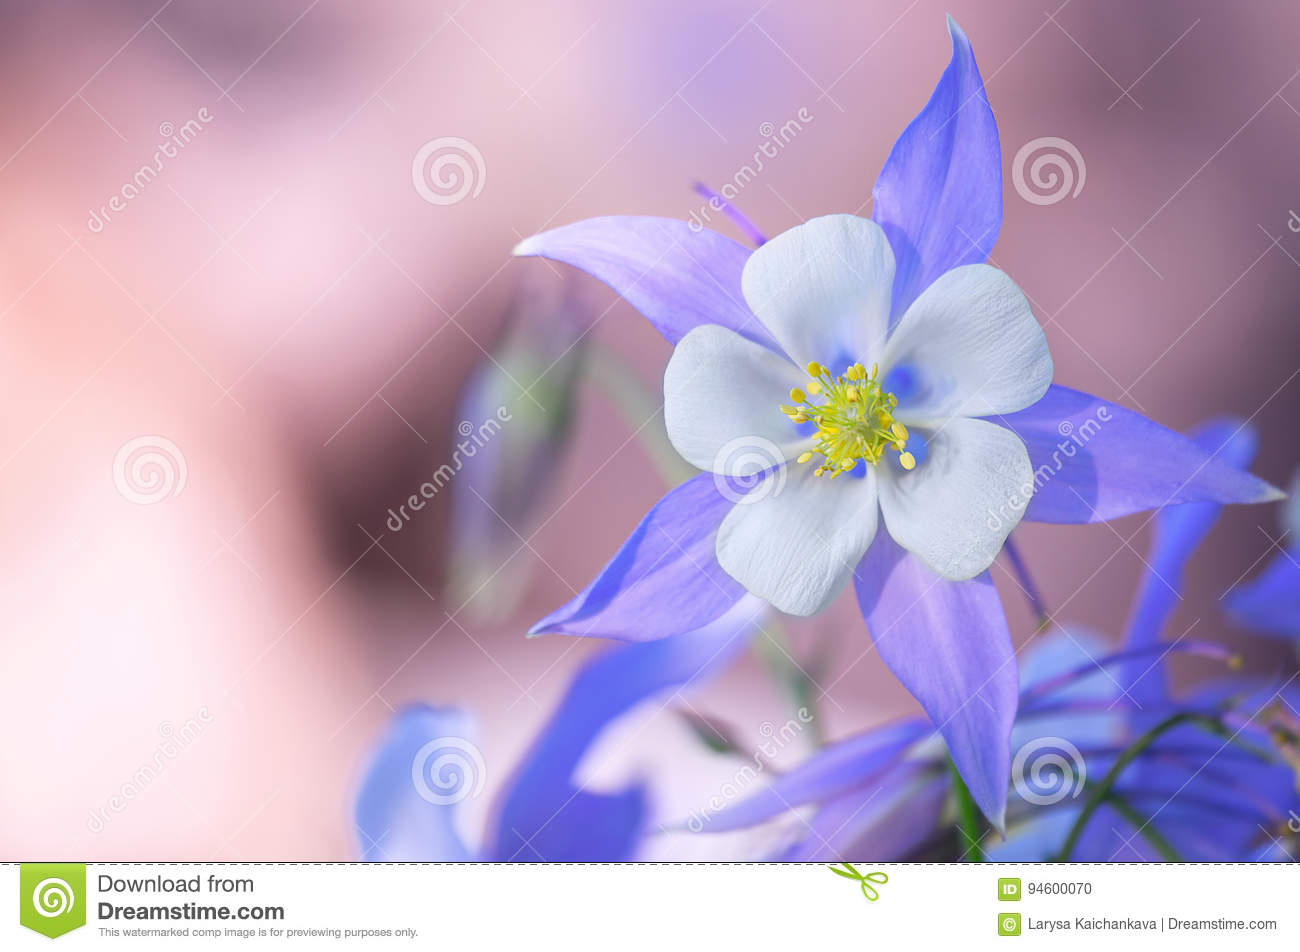 Garden of blue columbine flowers stock photo image of flowers download garden of blue columbine flowers stock photo image of flowers blue 94600070 izmirmasajfo